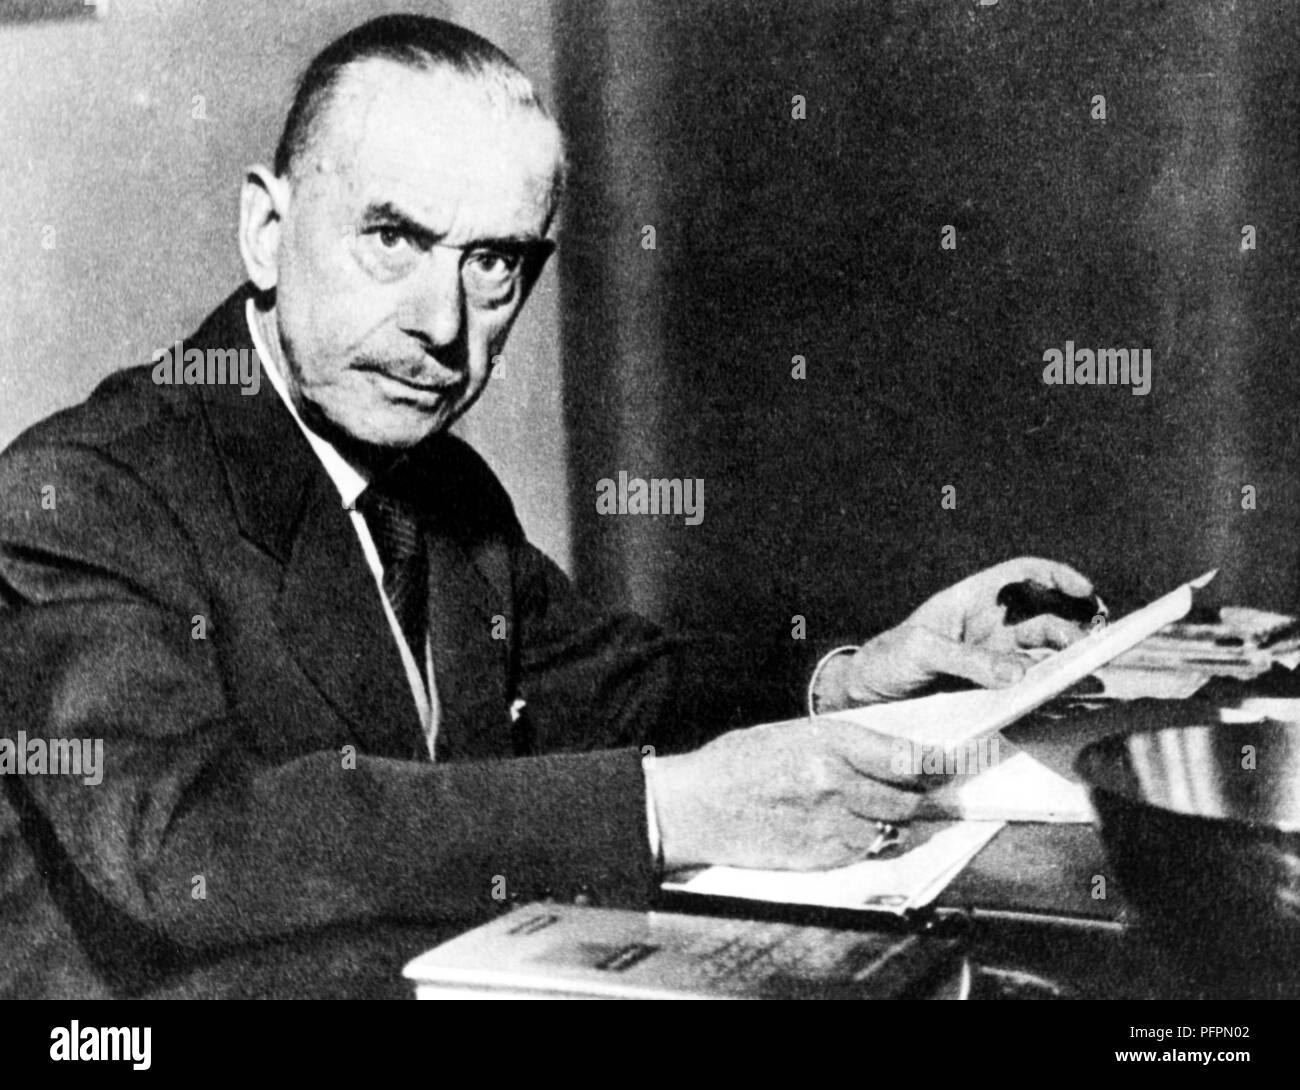 thomas mann (1875-1955) - Stock Image